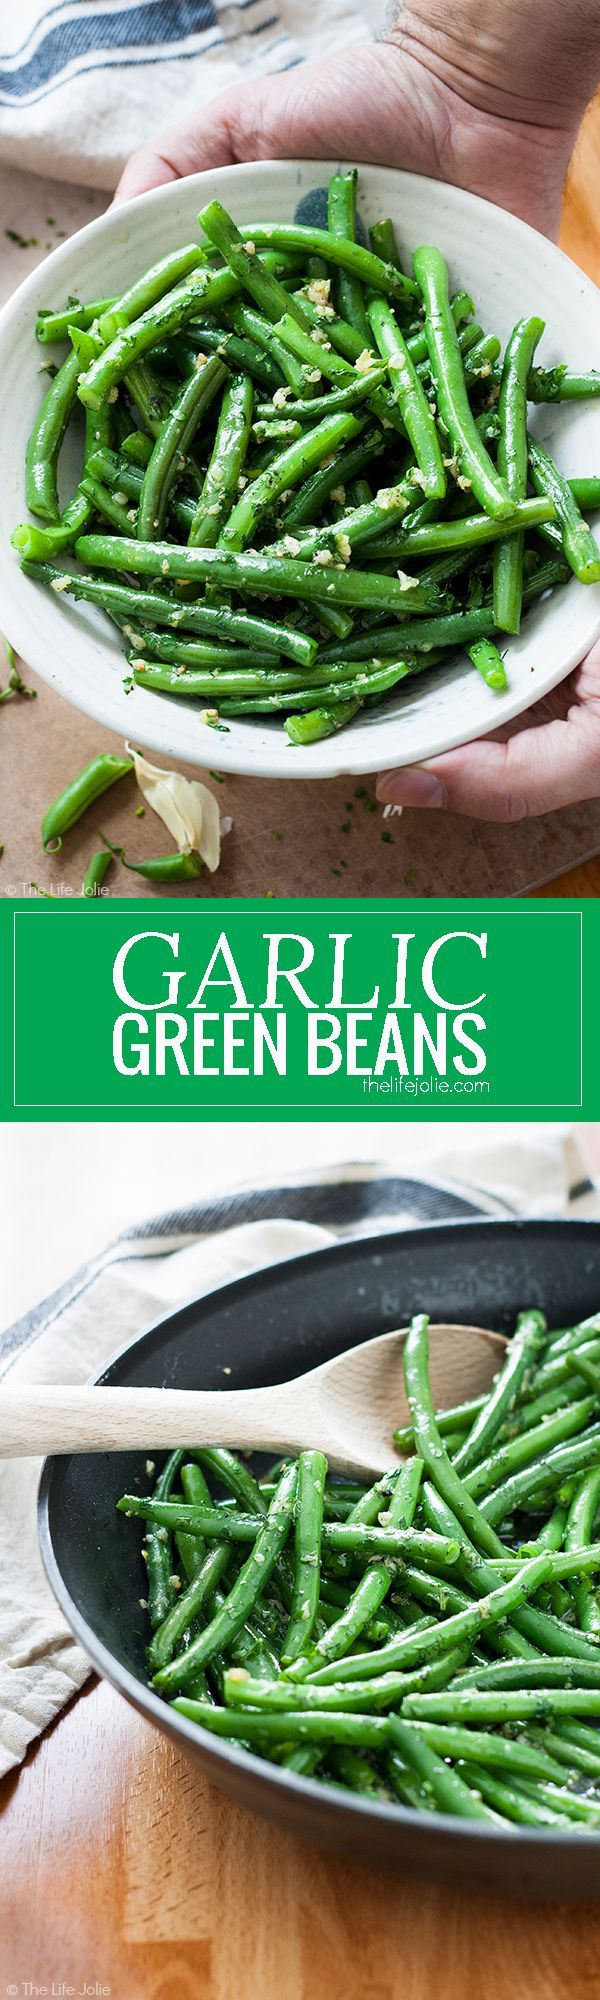 Garlic Green Beans is one of my favorite side dish recipes! It's easy to make and pretty healthy with Crispy Green Beans sauteed in a skillet. Fresh parley adds a great, herbaceous brightness with a little bit of butter and garlic. This is special enough food for Thanksgiving or any other holiday meal and also great in a pinch on a busy weeknight!